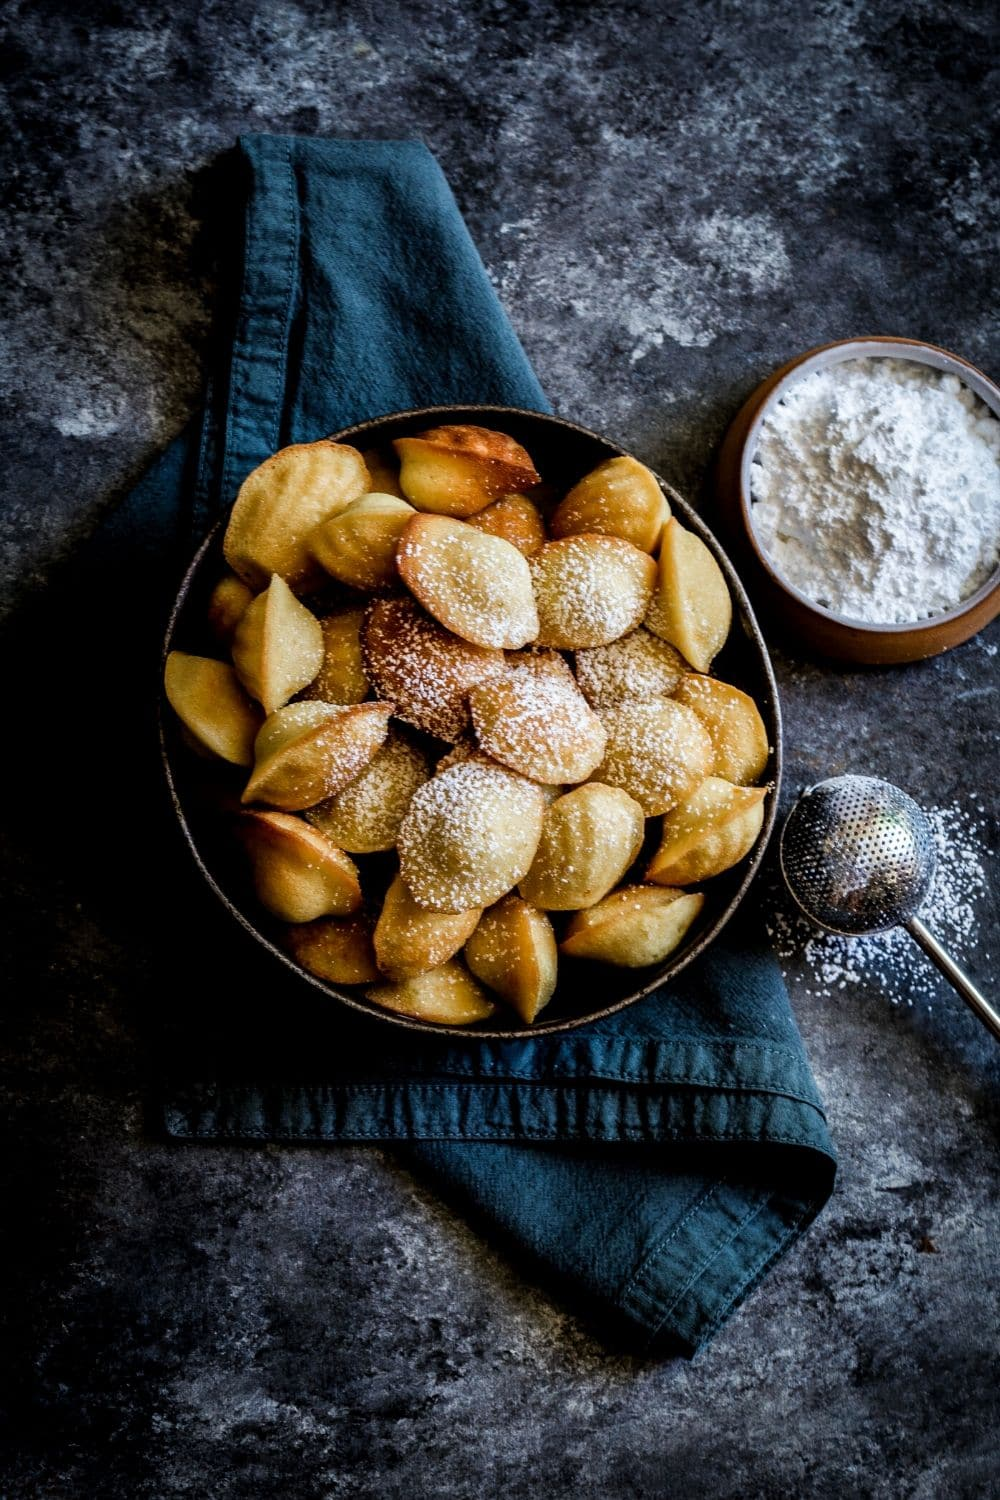 Iconic French Madeleines: golden blonde, lightly dusted with powdered sugar.